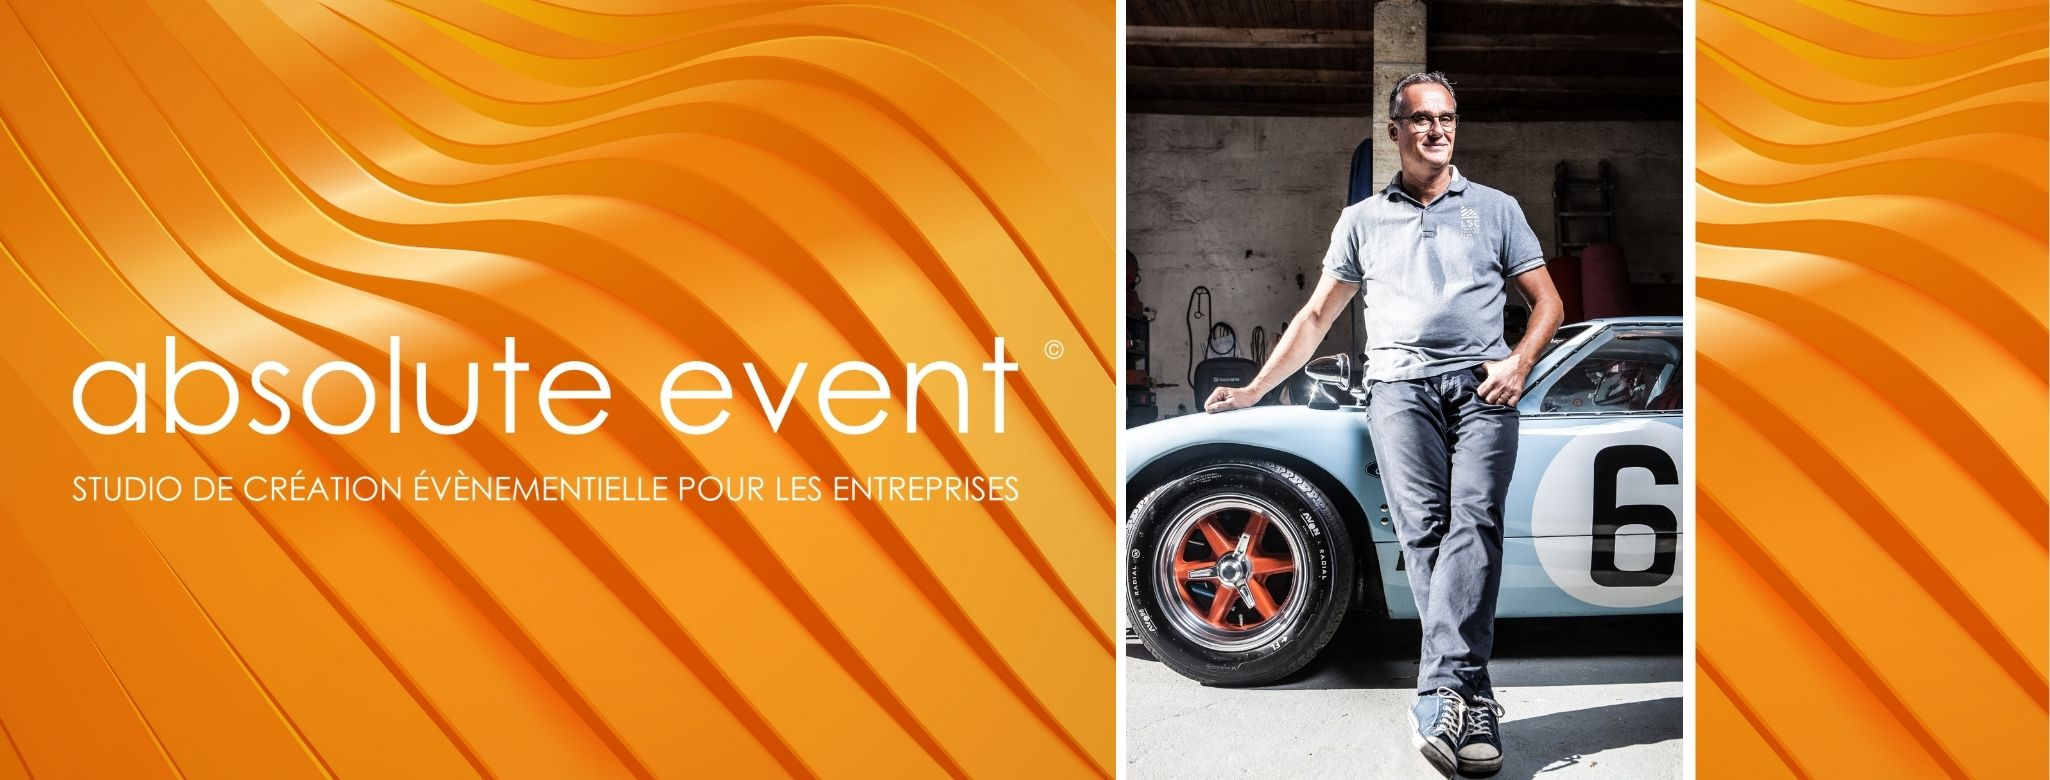 COUV FB ABSOLUTE EVENT (1)